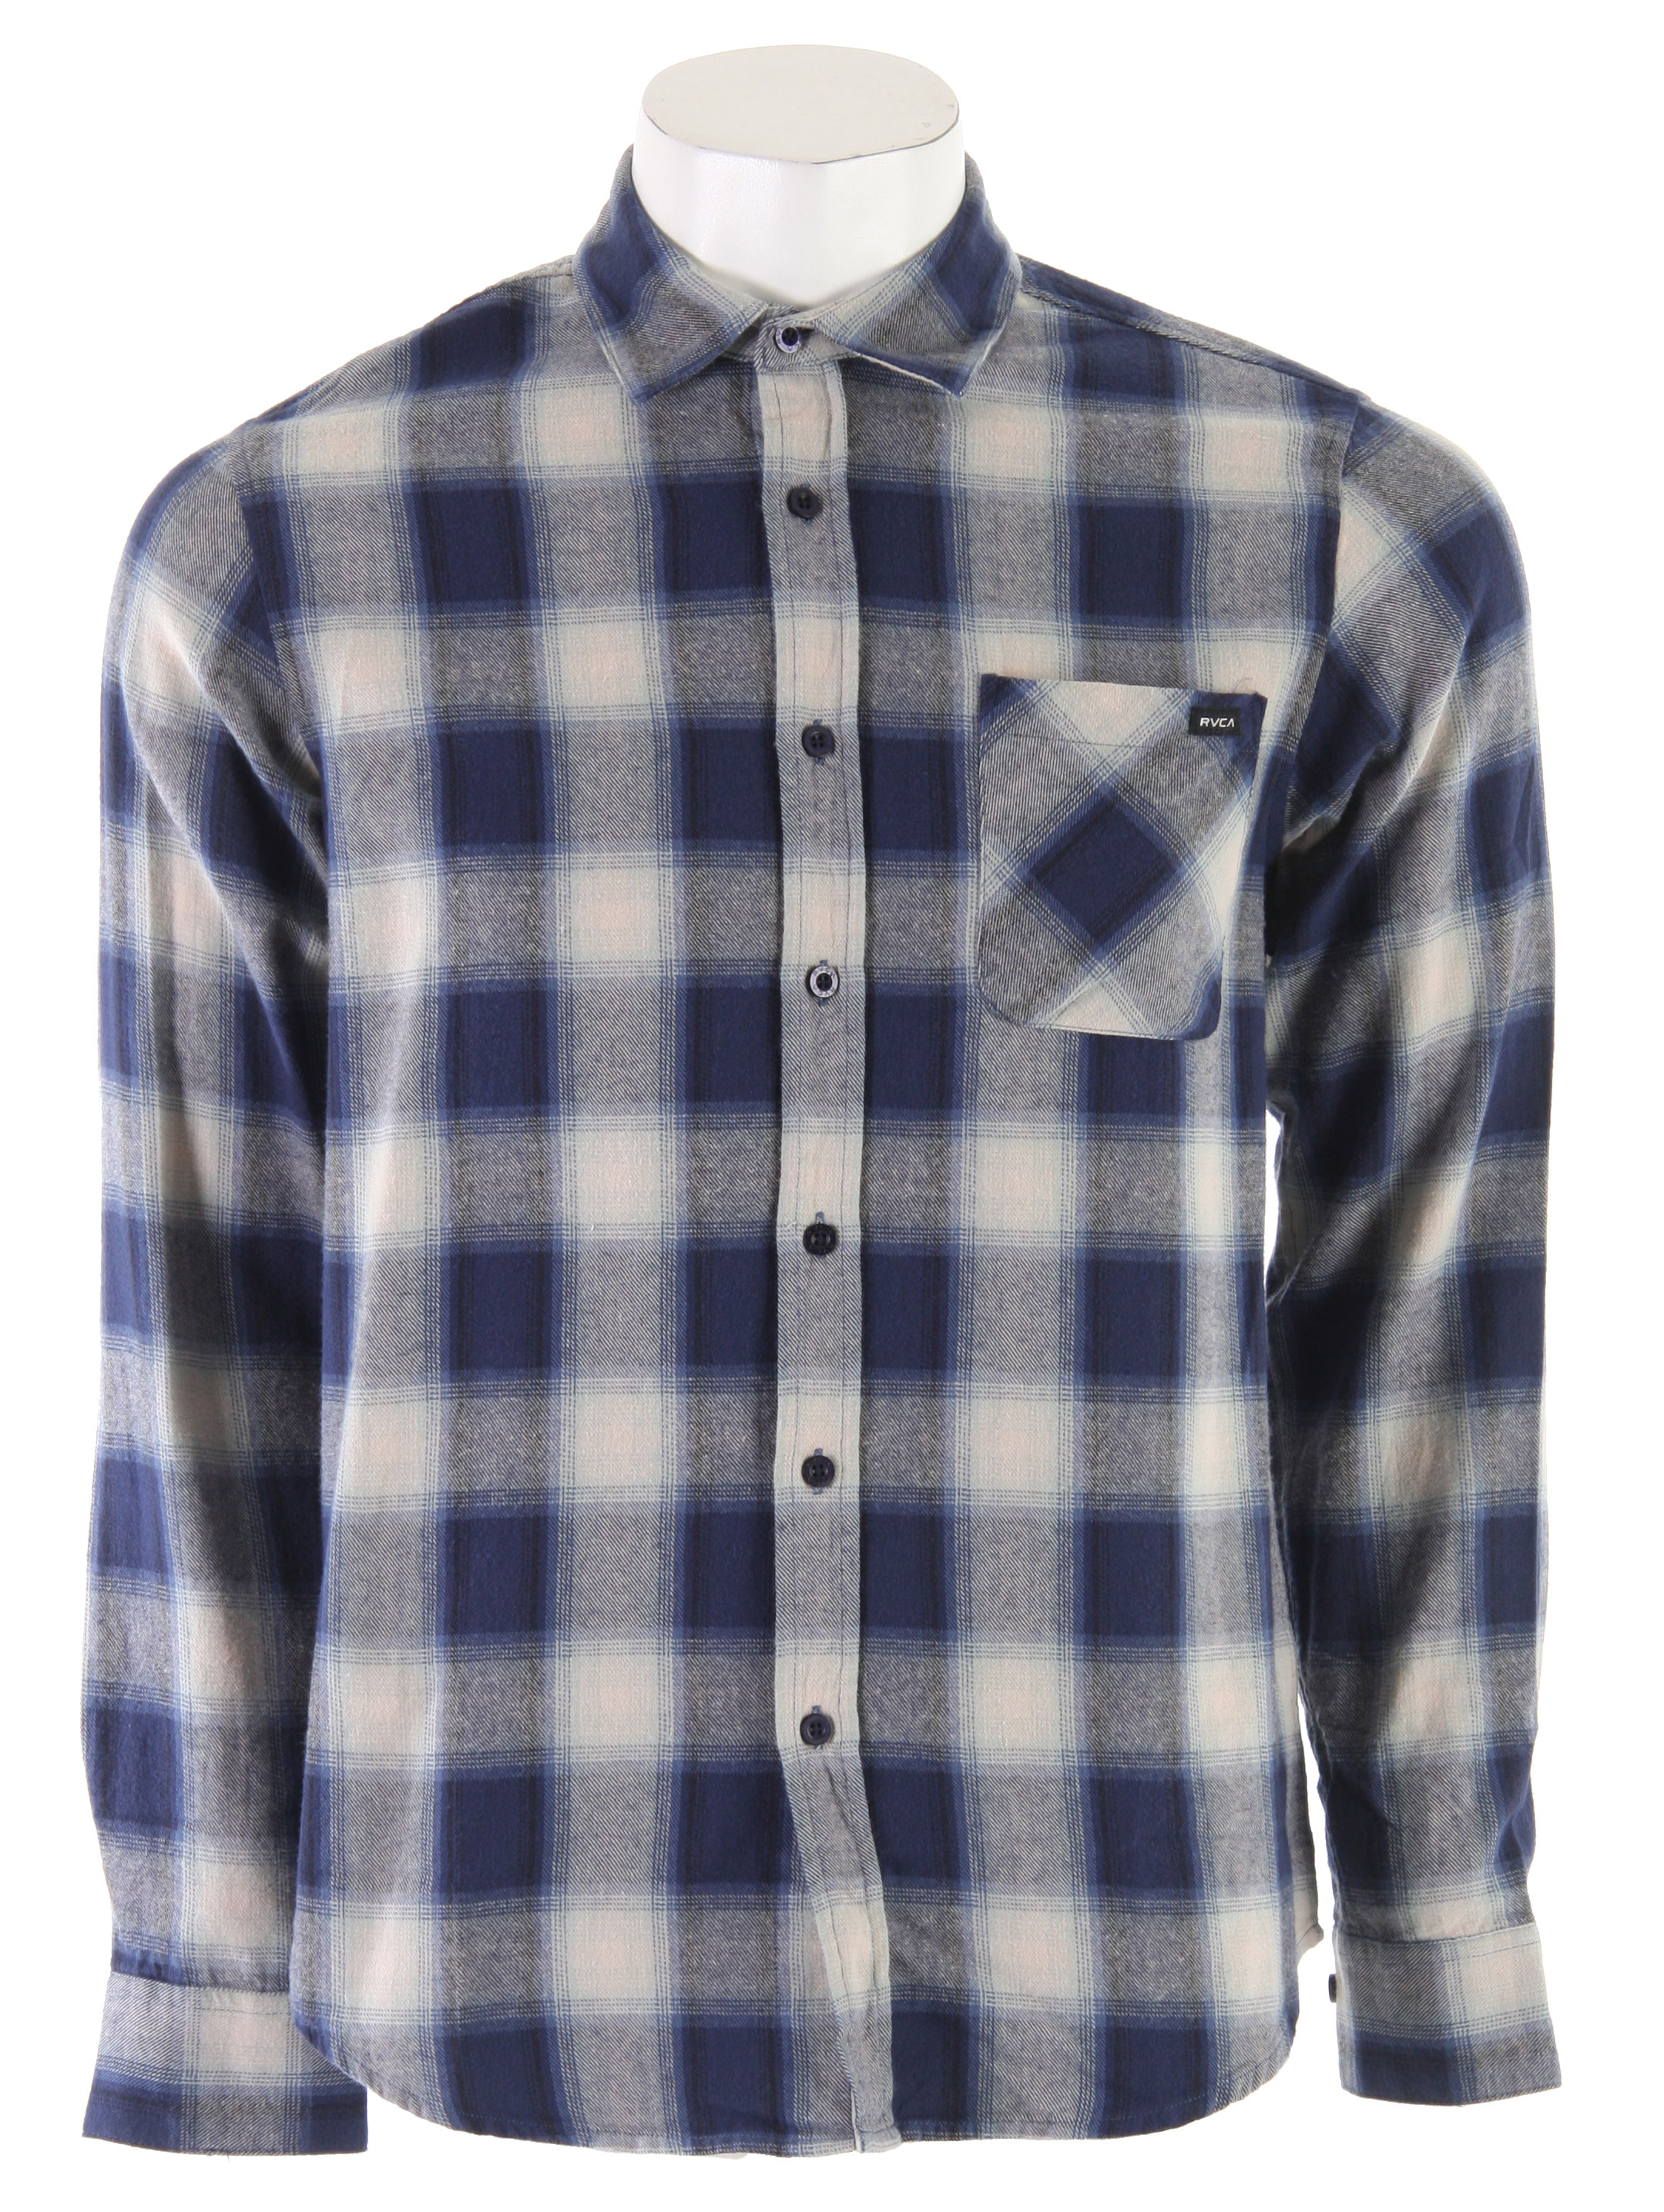 Guns and Military Add this ultra comfy flannel shirt to your wardrobe collection. The RVCA Dalton L/S Shirt is made with cotton featuring a classic flannel button down design. Slim fit, pair it with corduroys or your favorite pair of jeans and you're set to hit the town. Stay casual yet stylish with the RVCA Dalton L/S Shirt. Ultra comfortable and cozy, you can wear this almost anywhere. Hit the town with confidence and style.Key Features of the RVCA Dalton L/S Shirt: Cotton flannel button down Patch pocket at front with button closure Slim fit. - $37.95